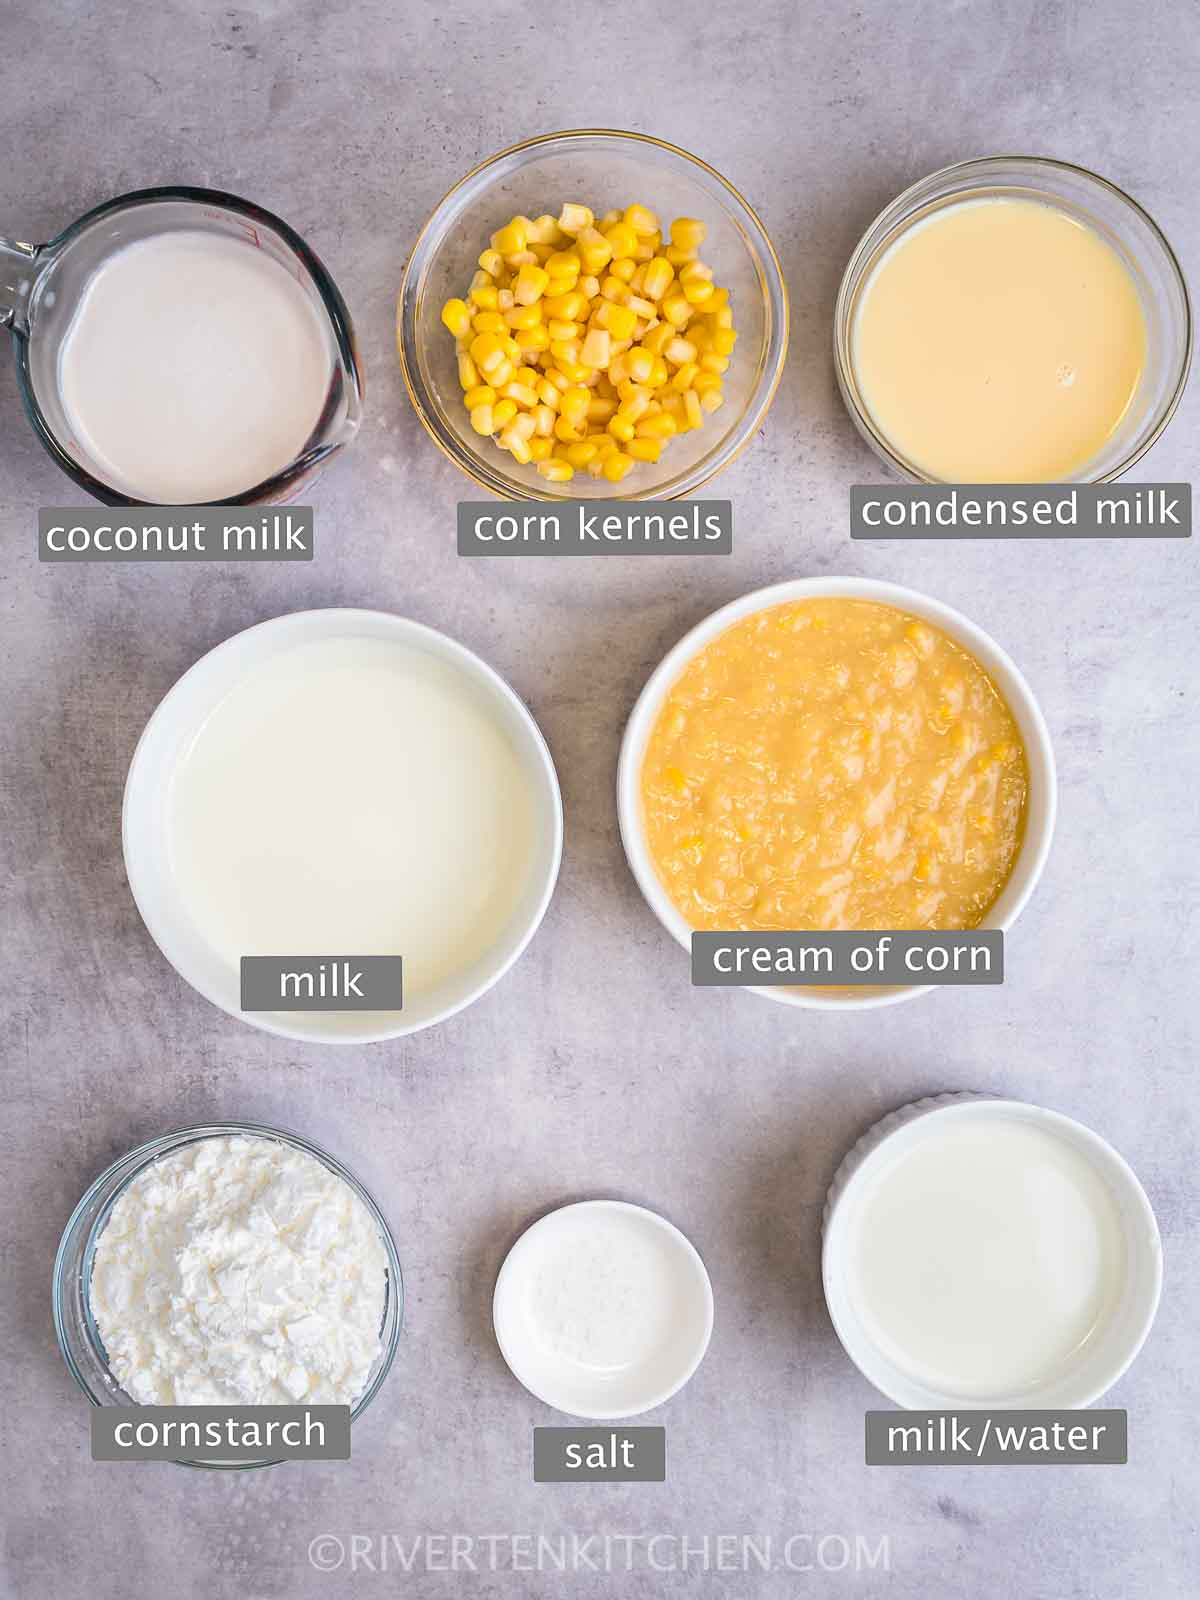 Corn, coconut milk, evaporated milk, fresh milk, condensed milk, cornstarch